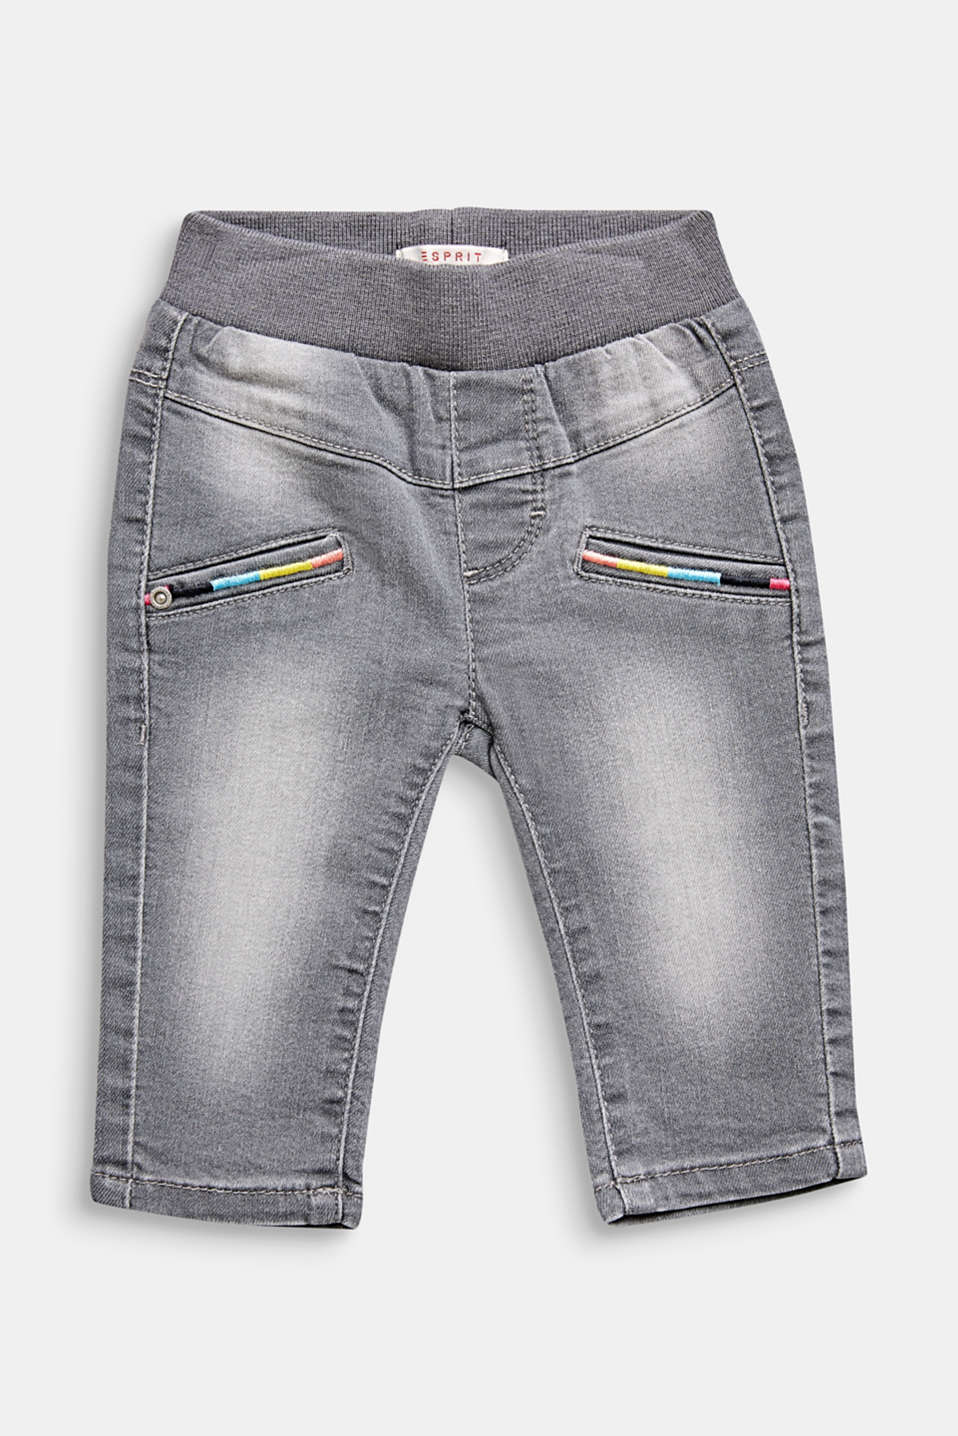 Esprit - Stretch-Jeans mit bunter Stickerei